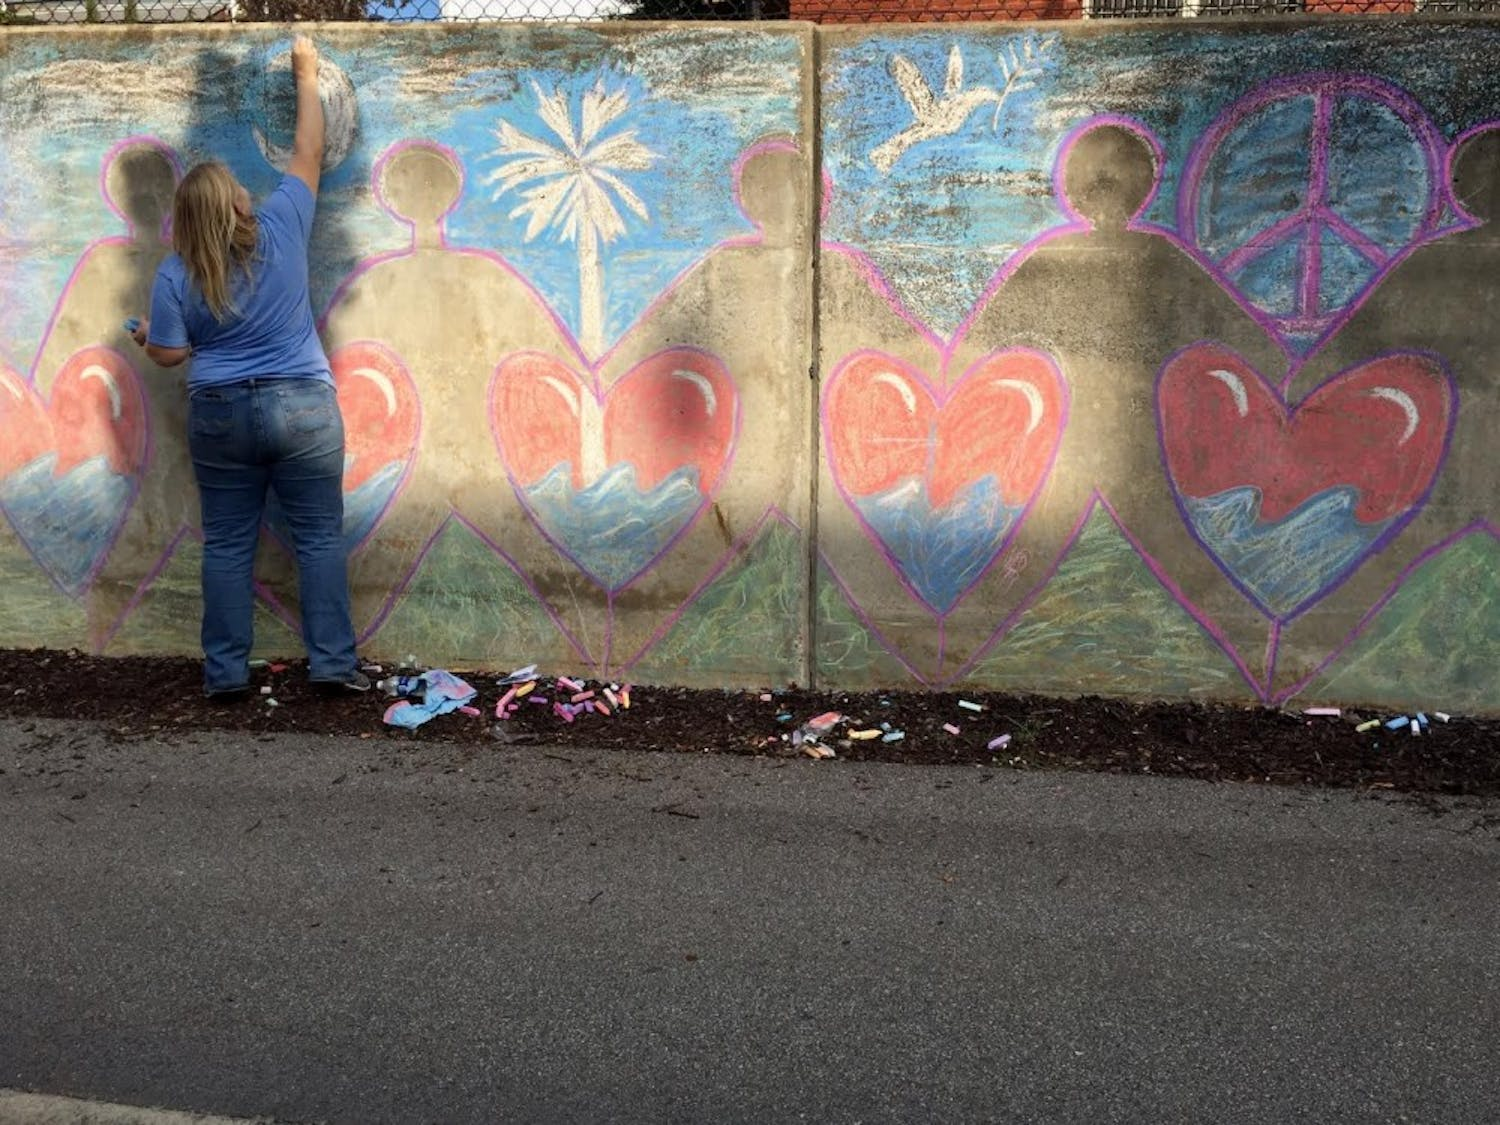 An artist spreads love and hope through her artwork on the walls of the Lincoln Street tunnel.